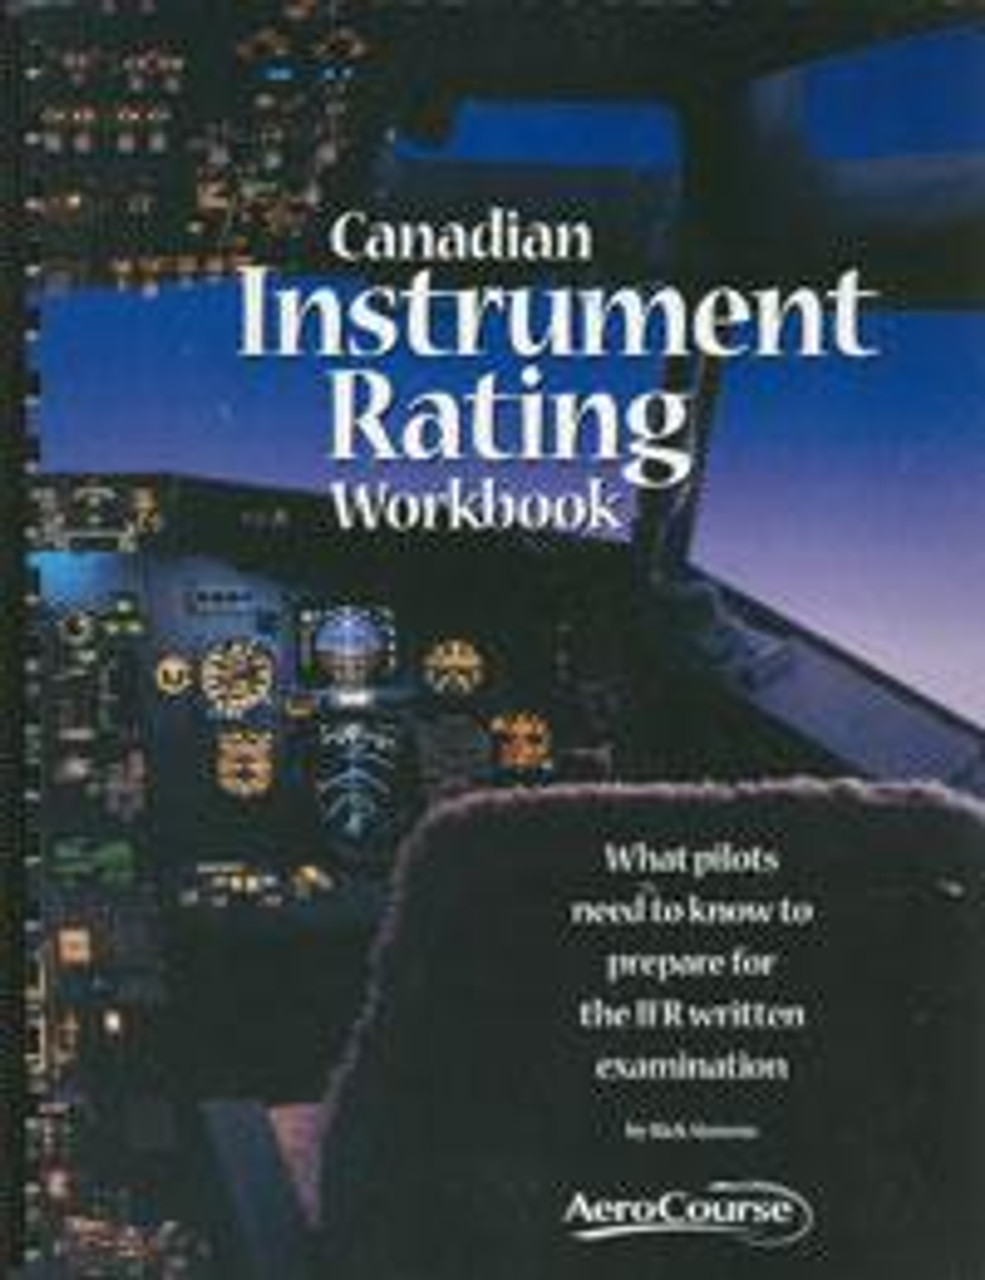 Aerocourse Canadian Instrument Rating Workbook  9th Edition